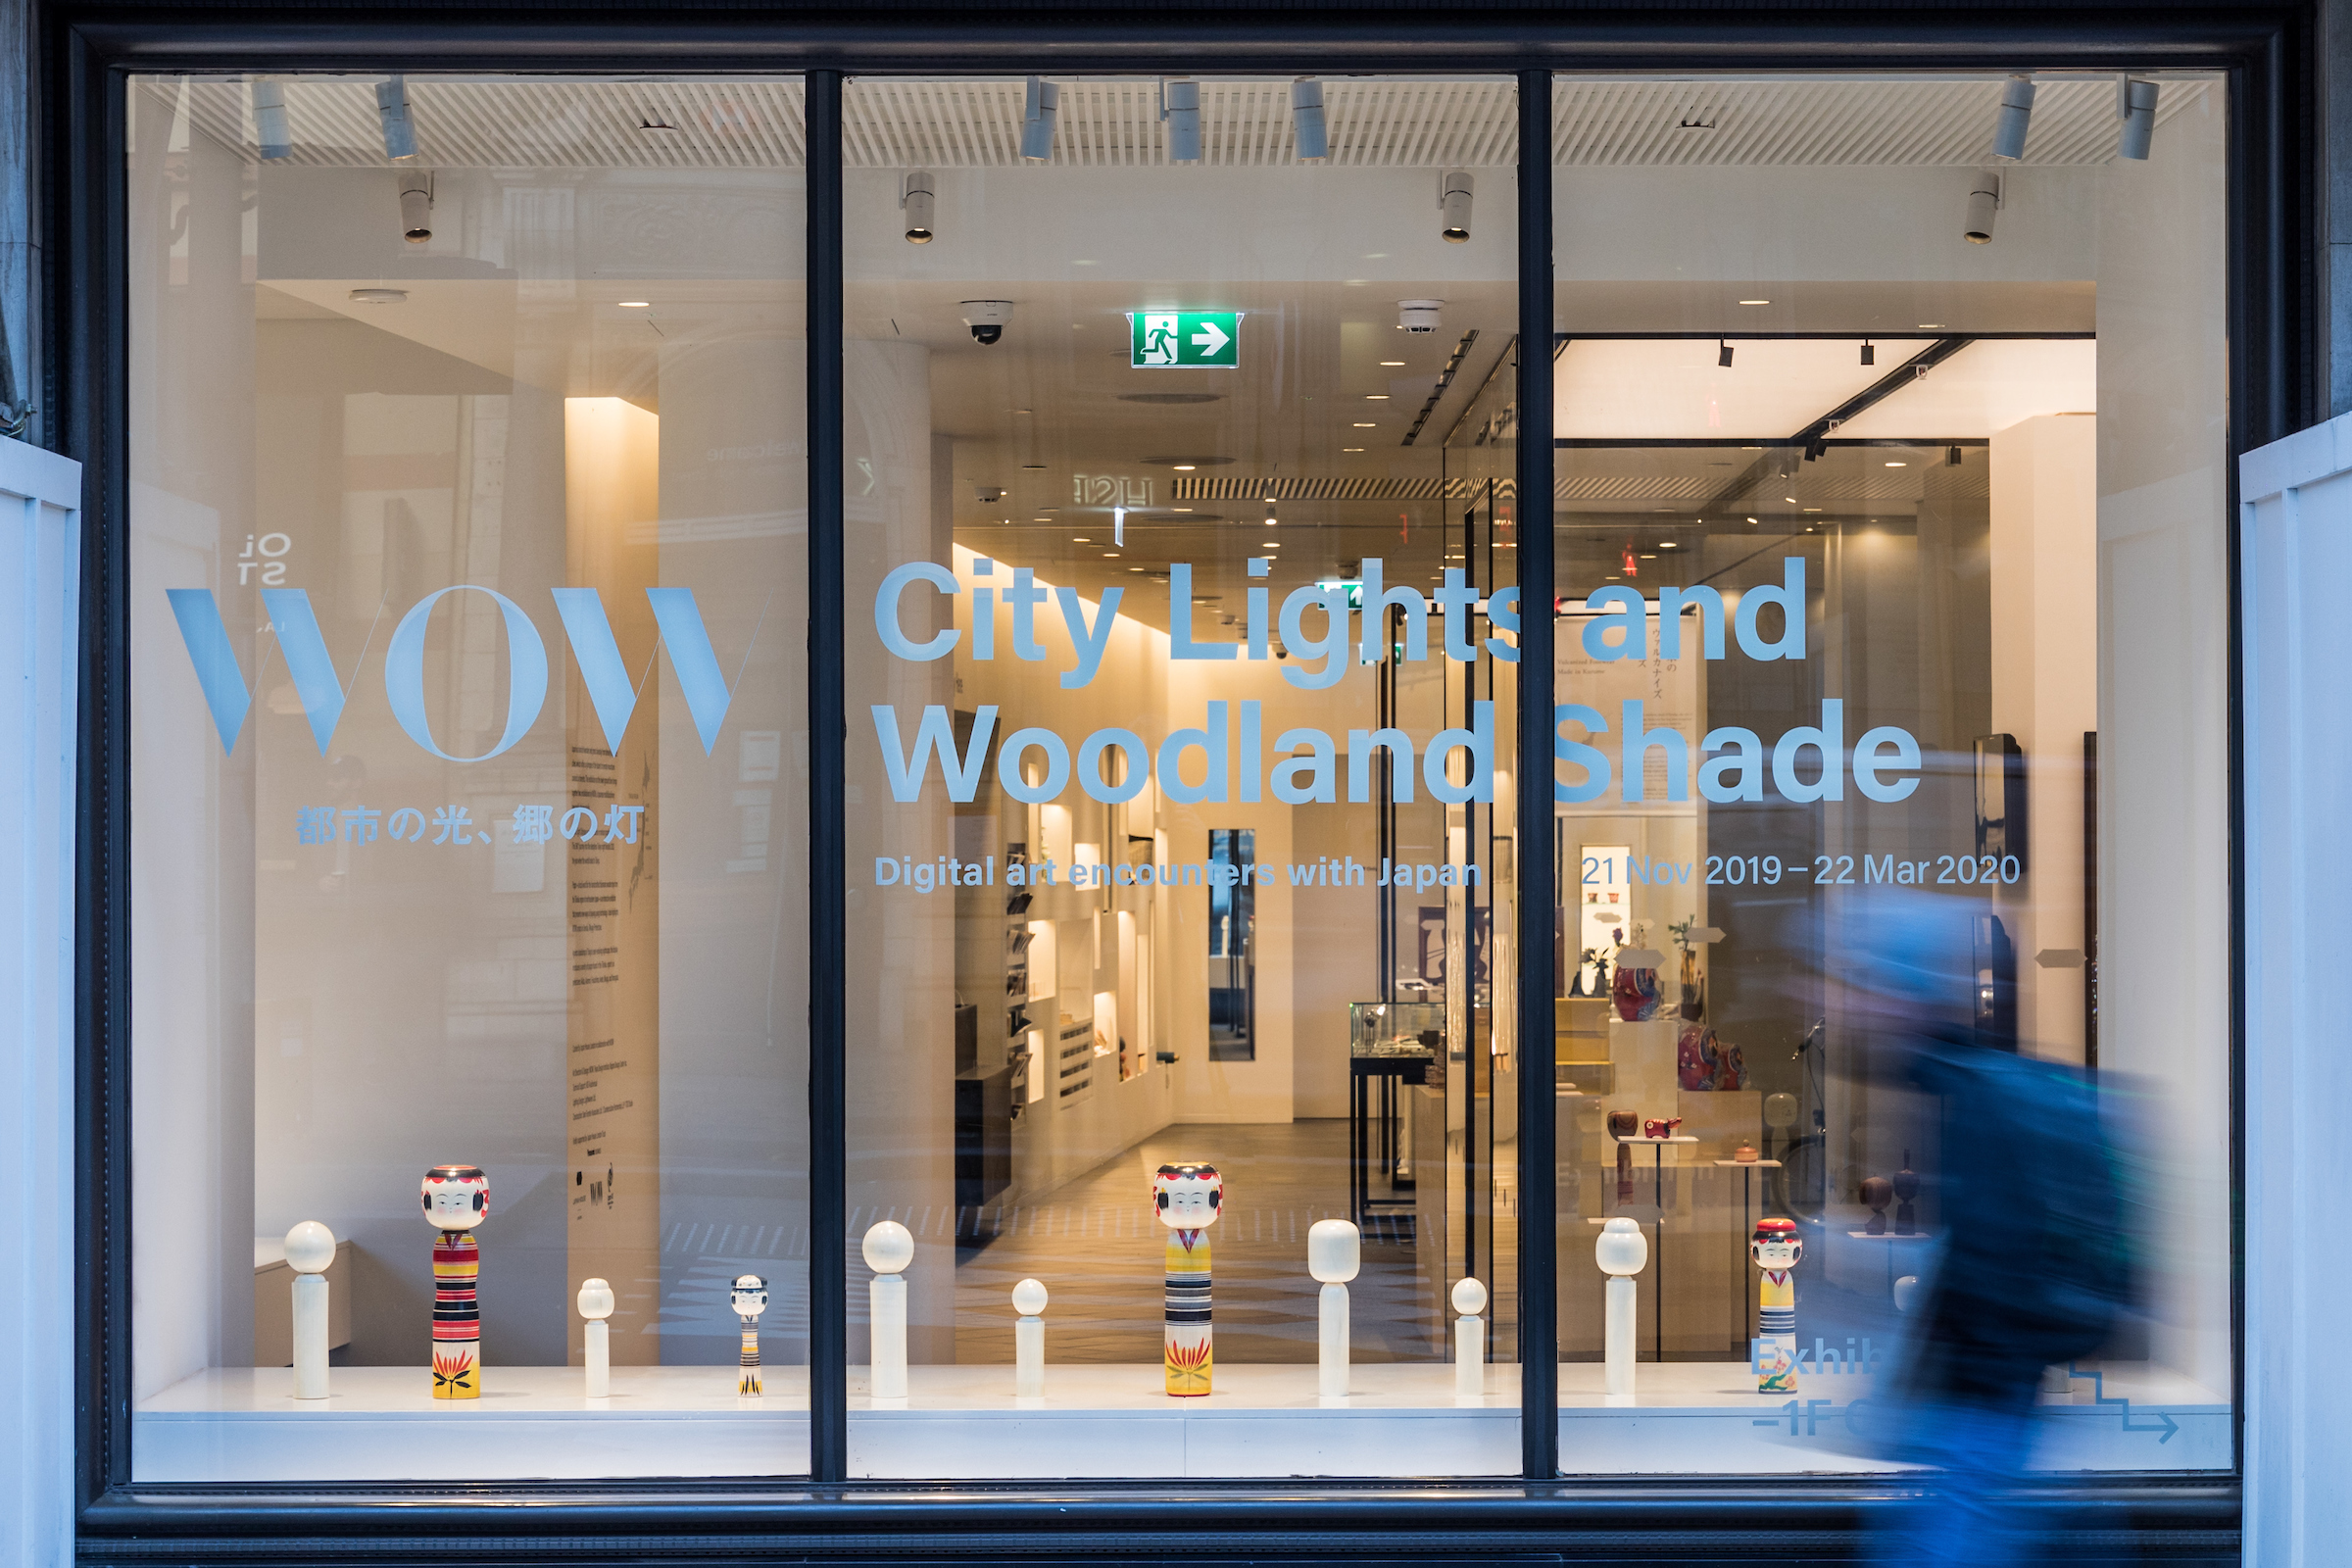 WOW City Lights and Woodland Shade exhibition at Japan House London 21 Nov 2019 22 March 2020 1